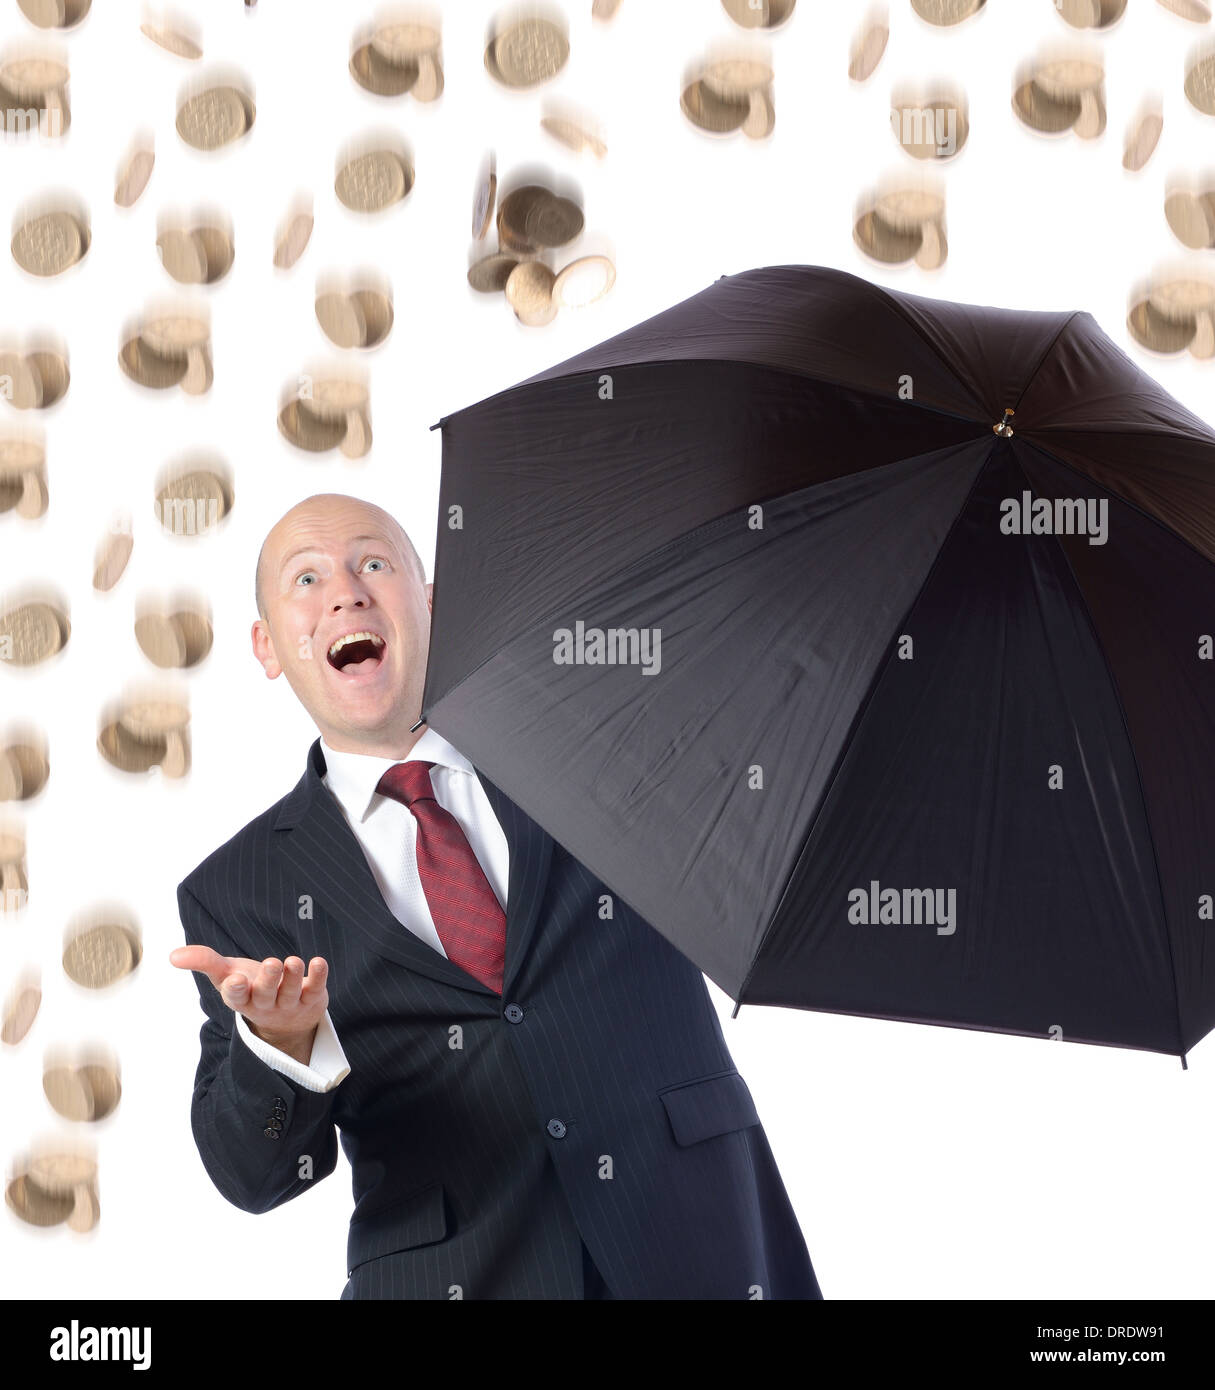 Man in suit with umbrella concept of getting better raining money - Stock Image